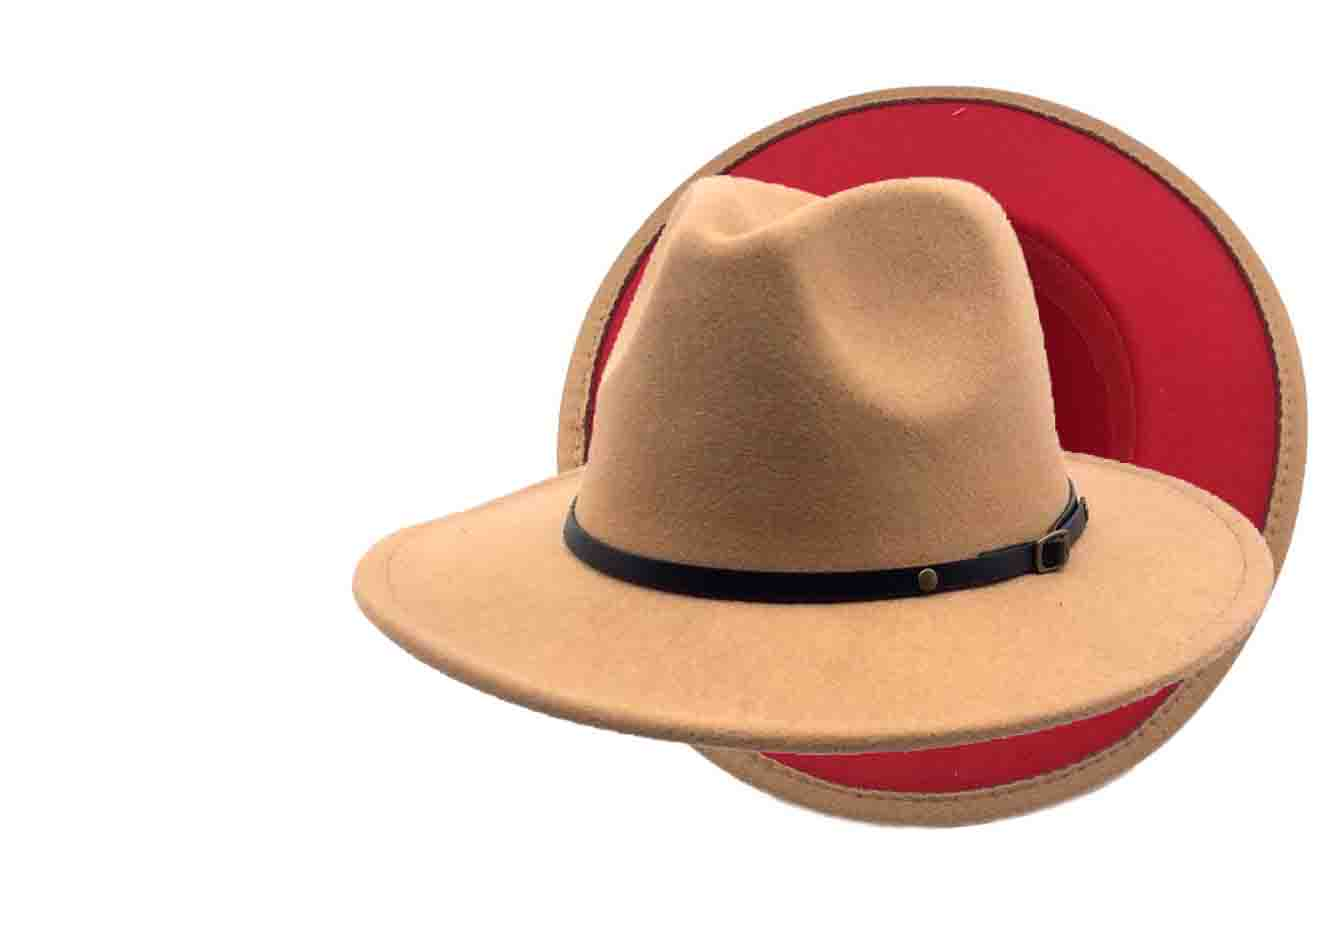 Red bottom felt unisex fedora hat. sale. Buy for $12.25 when you spend $35. christmas gift. stylish winter hat for men and women. more colors, red brim.